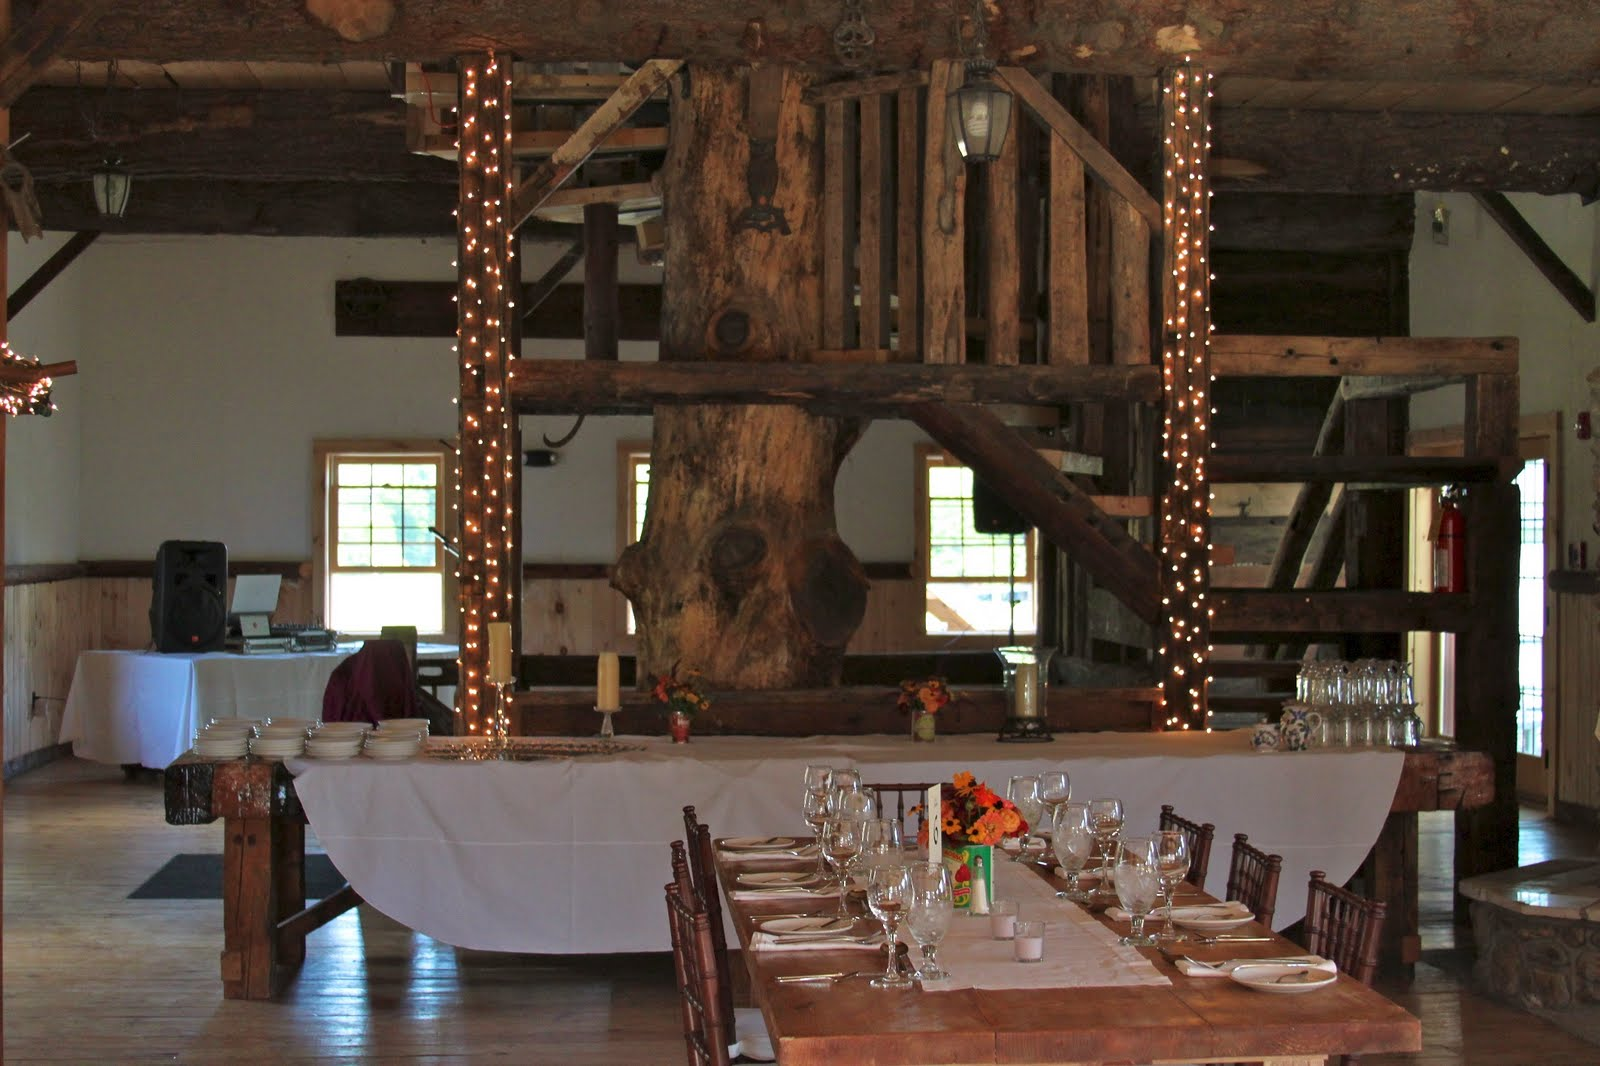 Amee Farm: Rustic Barn Wedding